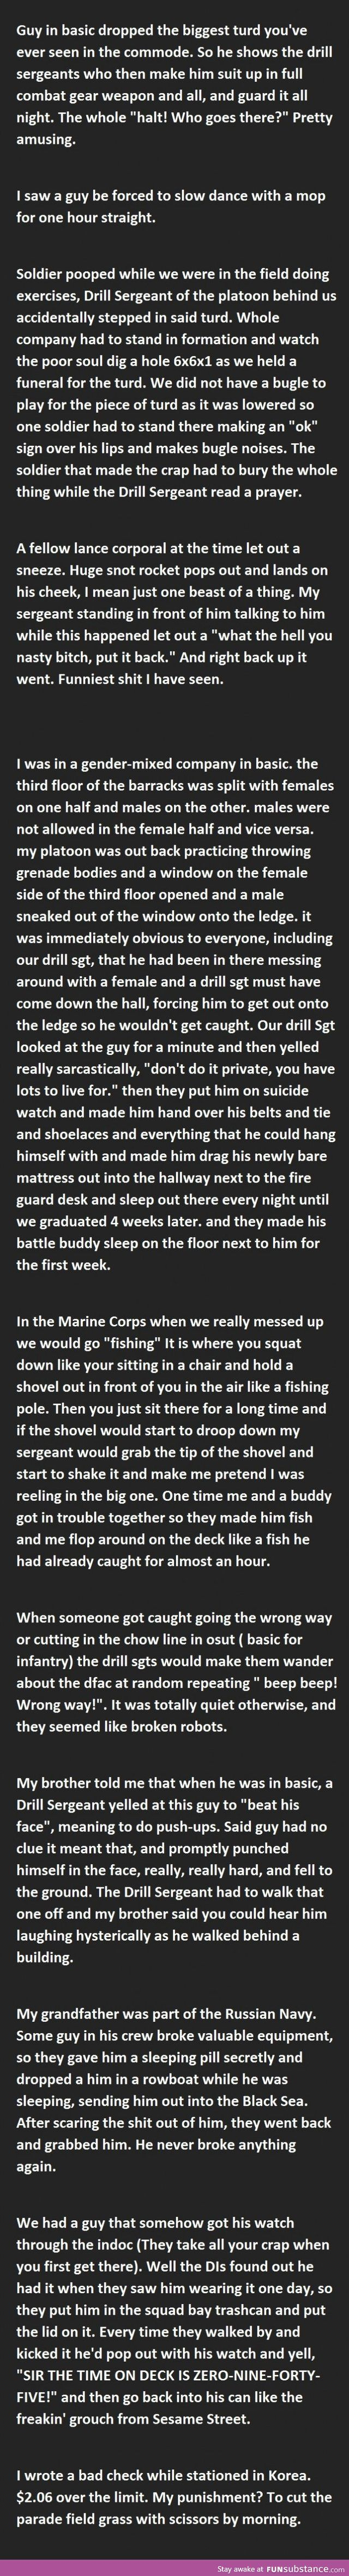 20 Funny Military Punishments (Part 2)